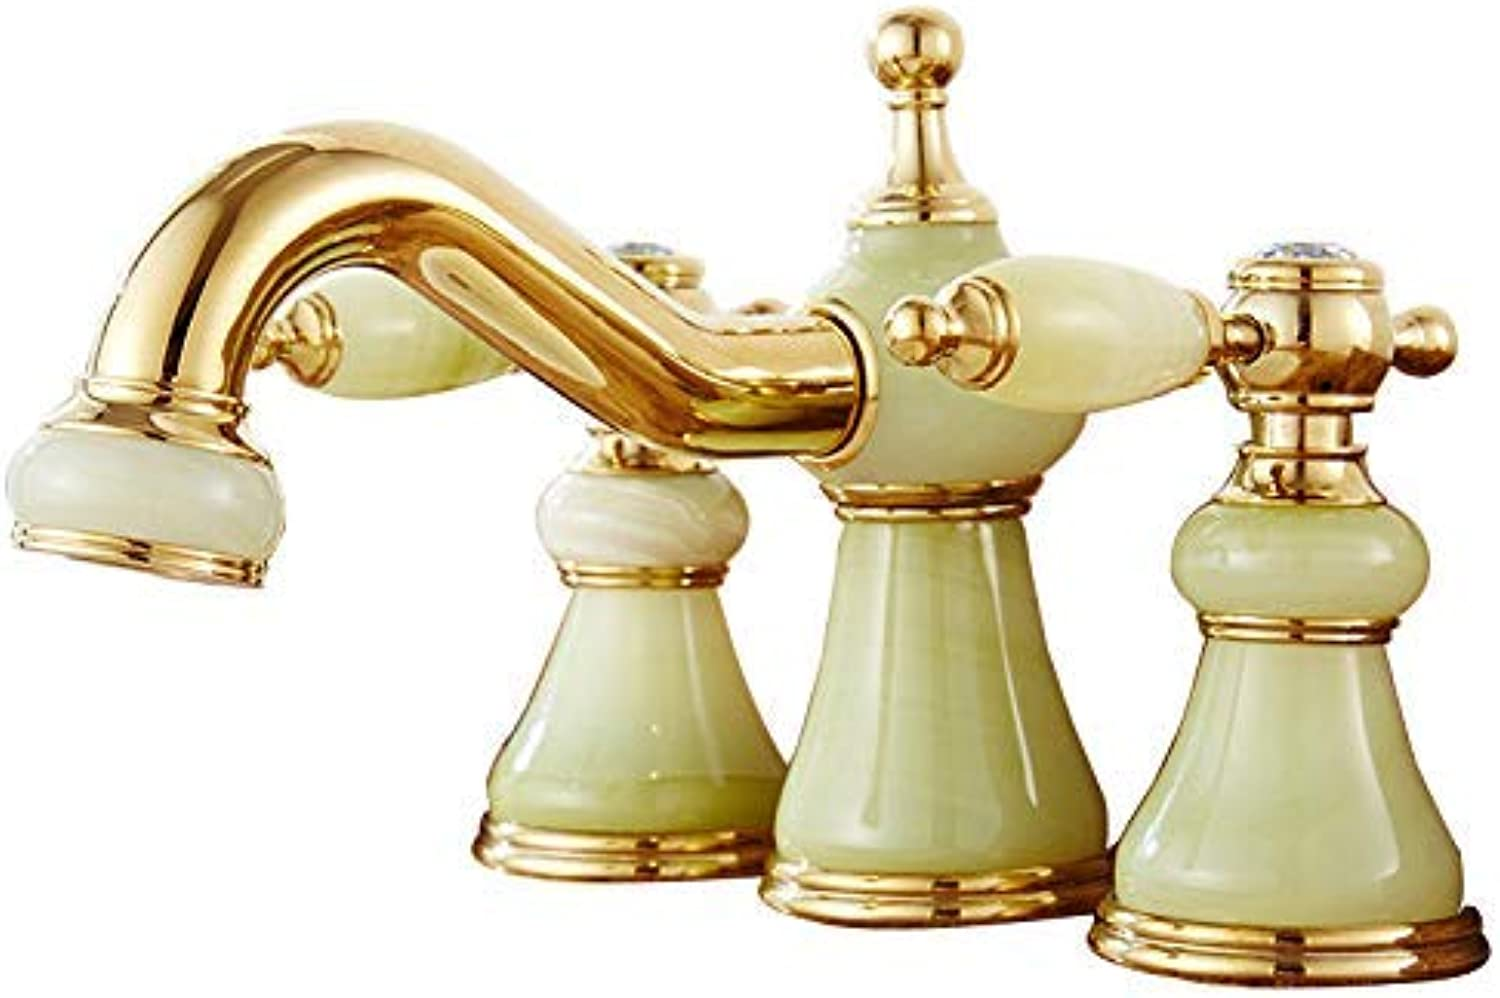 Oudan Taps Faucet Basin Mixer Jade Three Holes Hot And Cold Split Antique Marble Wash Basin Faucet D (color   -, Size   -)